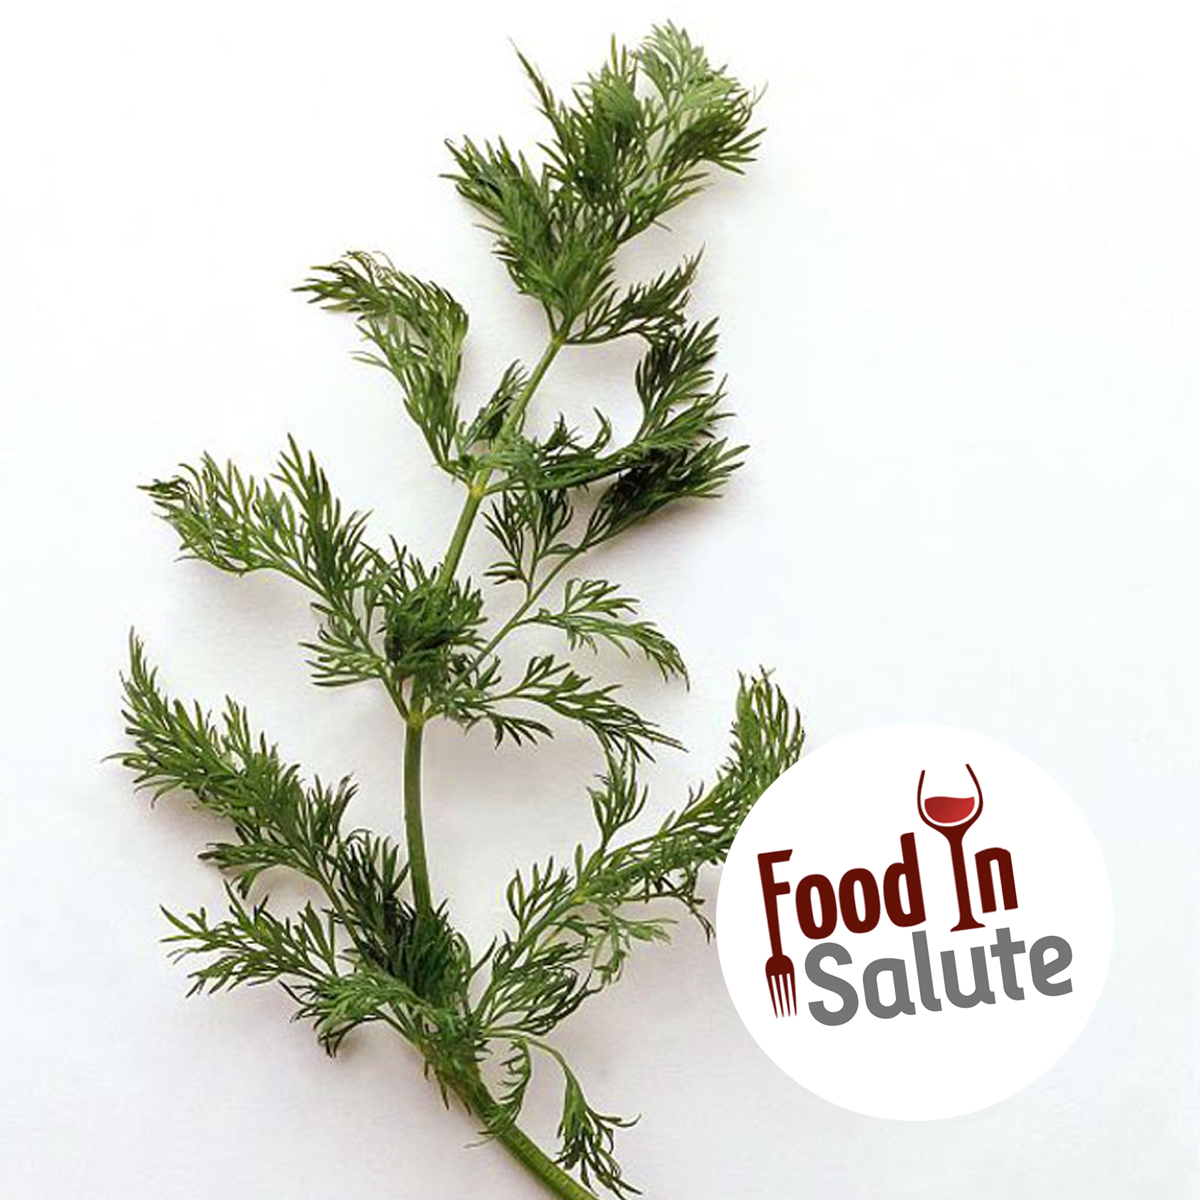 FOOD IN SALUTE - FINOCCHIETTO SELVATICO